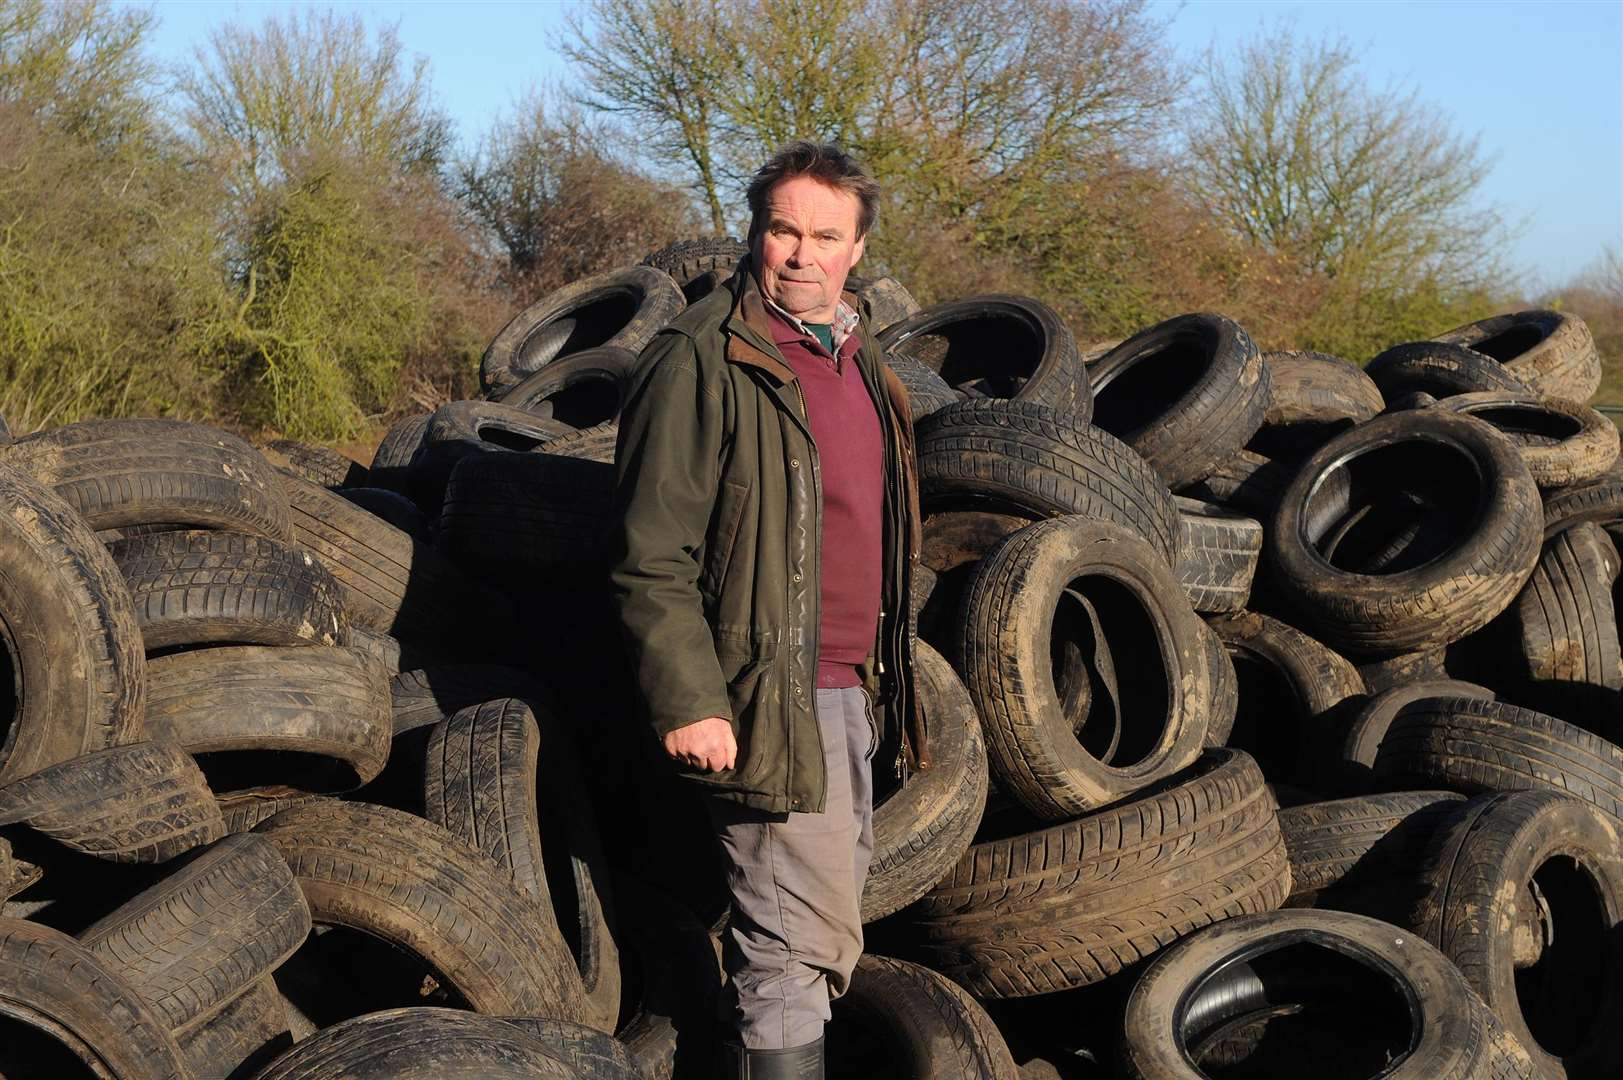 Hundreds of tyres have been fly-tipped on a farm in Milden....Pictured: Farmer Christopher Hawkins standing next to the huge pile of tyres on the farm.....PICTURE: Mecha Morton... (6791070)